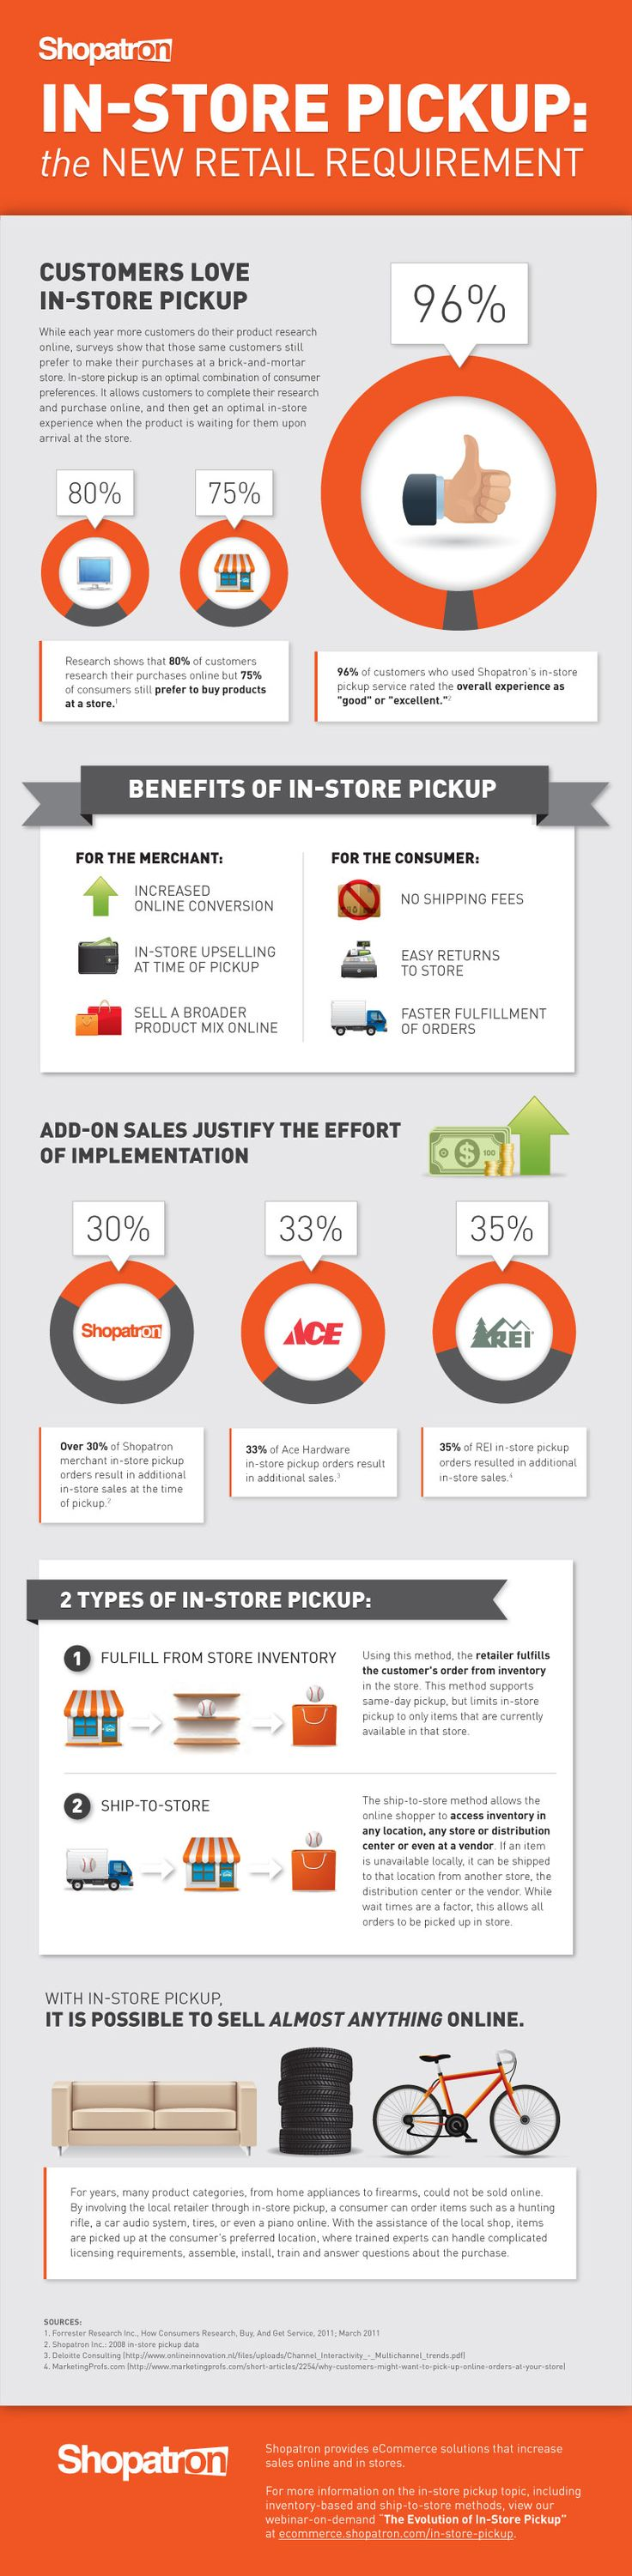 In-Store Pickup: The New Retail Requirement. An infographic by Mark Grondin,  SVP of Marketing at Shopatron